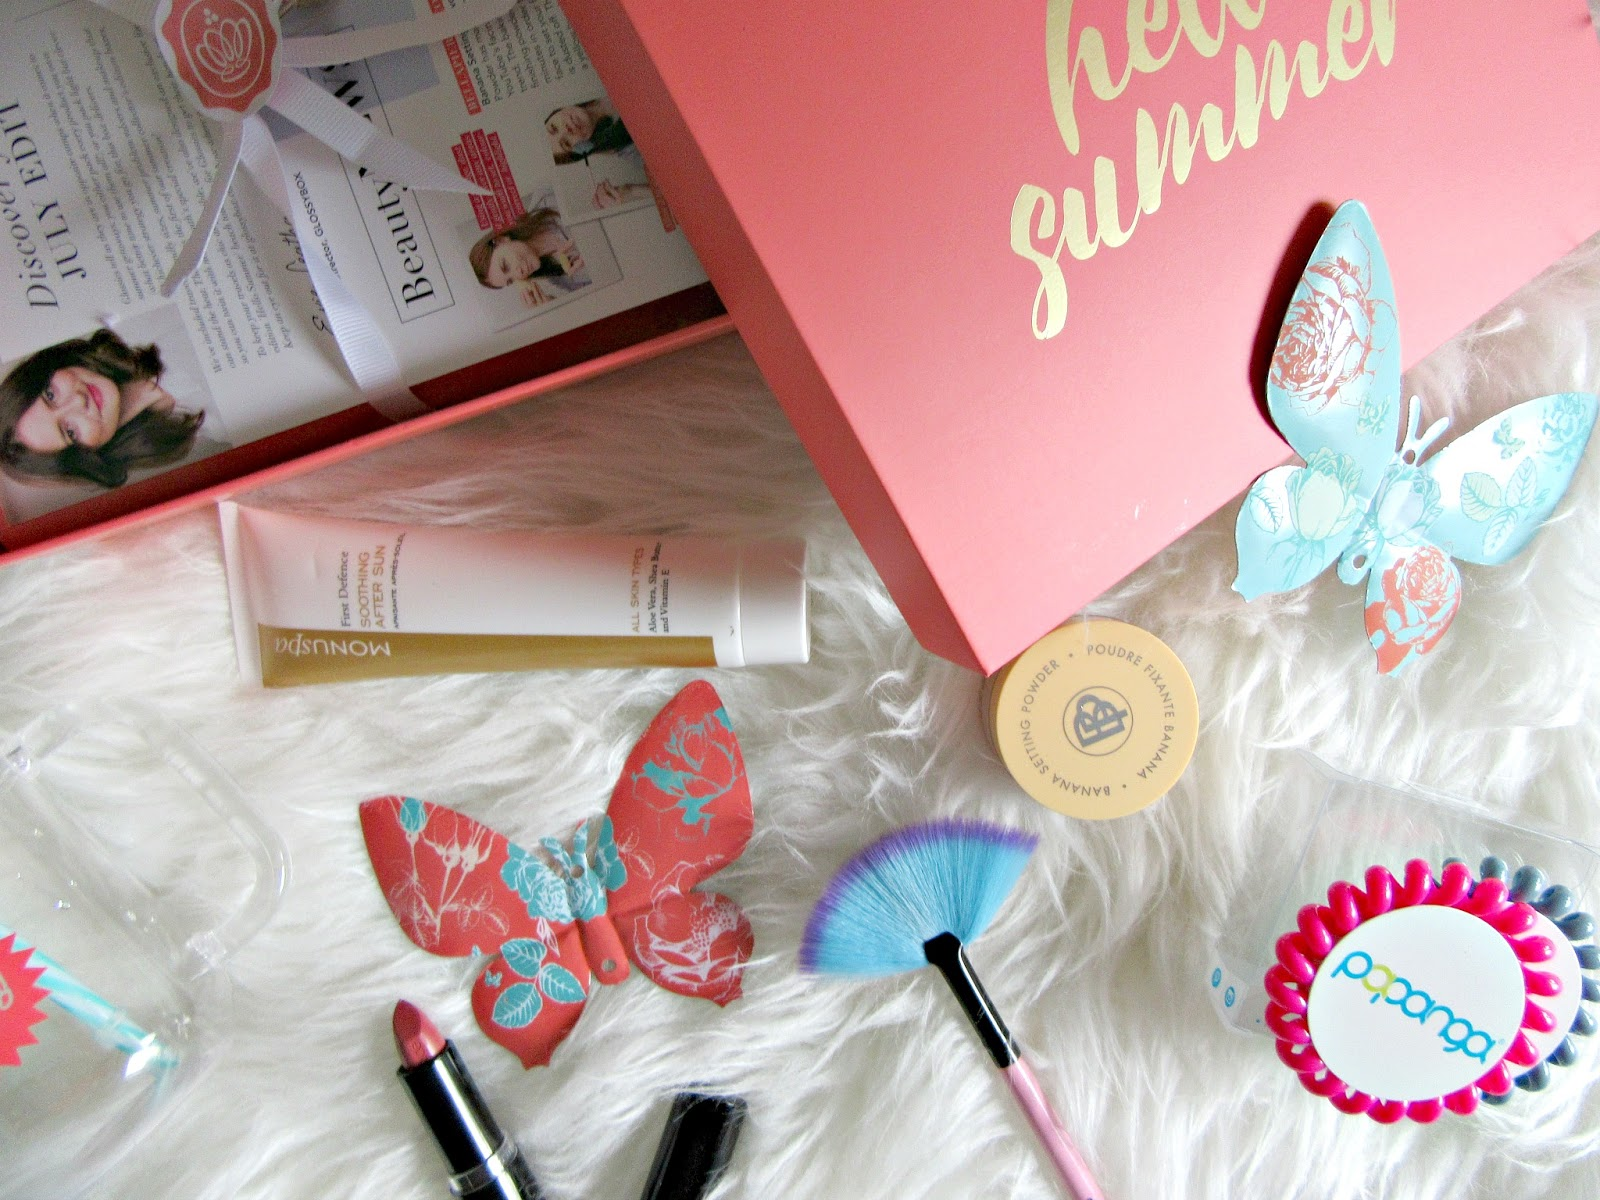 Glossybox UK July 2017 Review